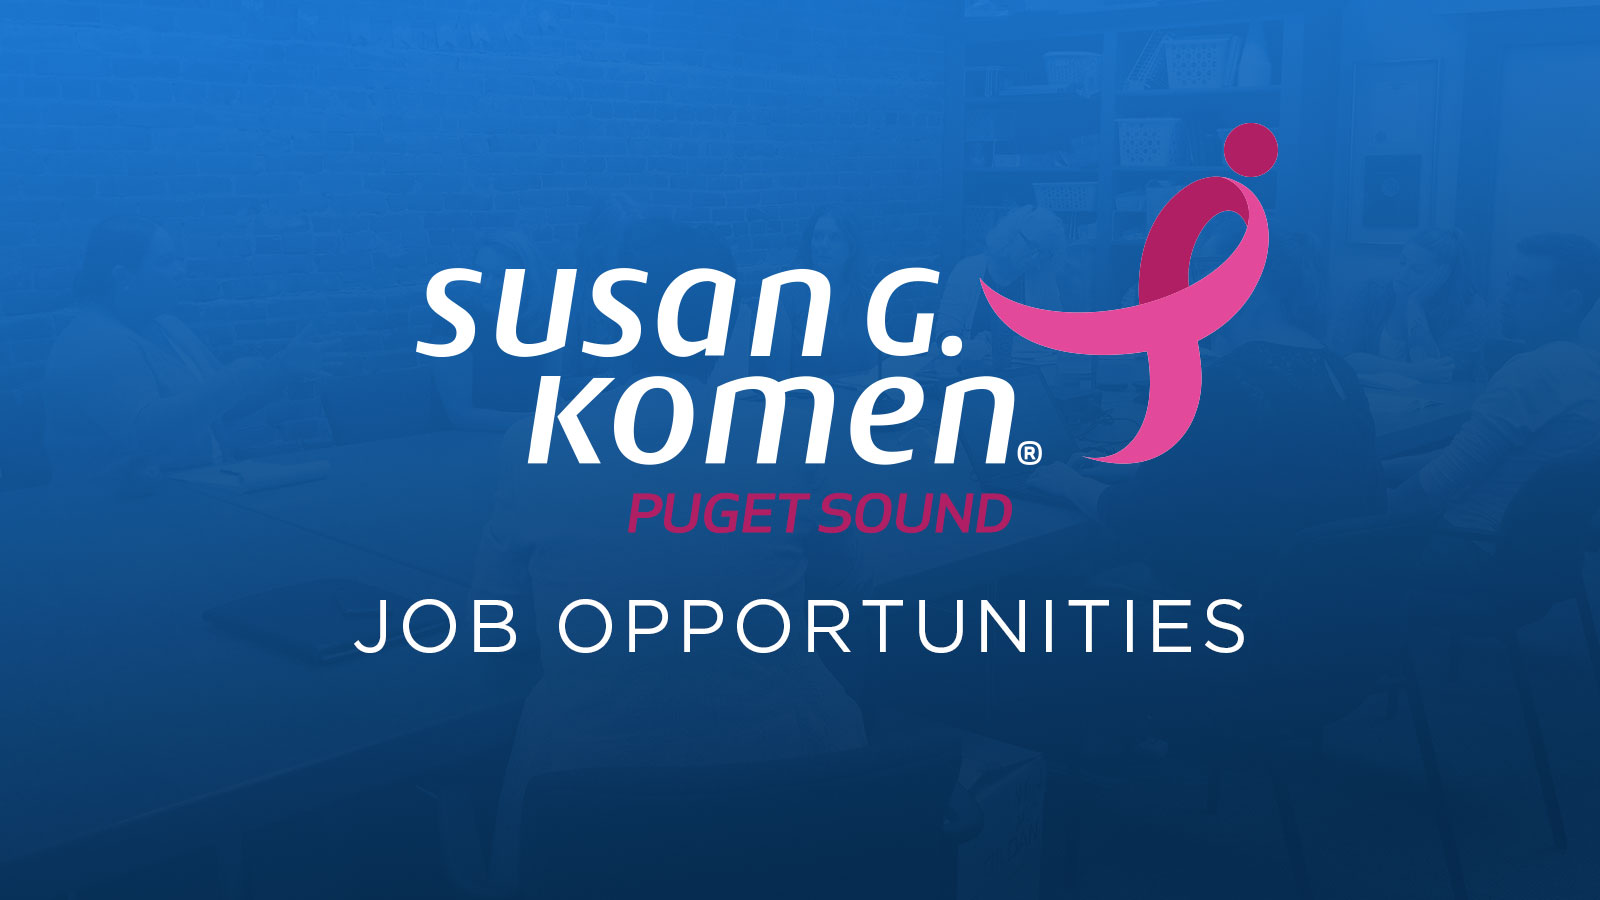 Join our team at Susan G. Komen Puget Sound